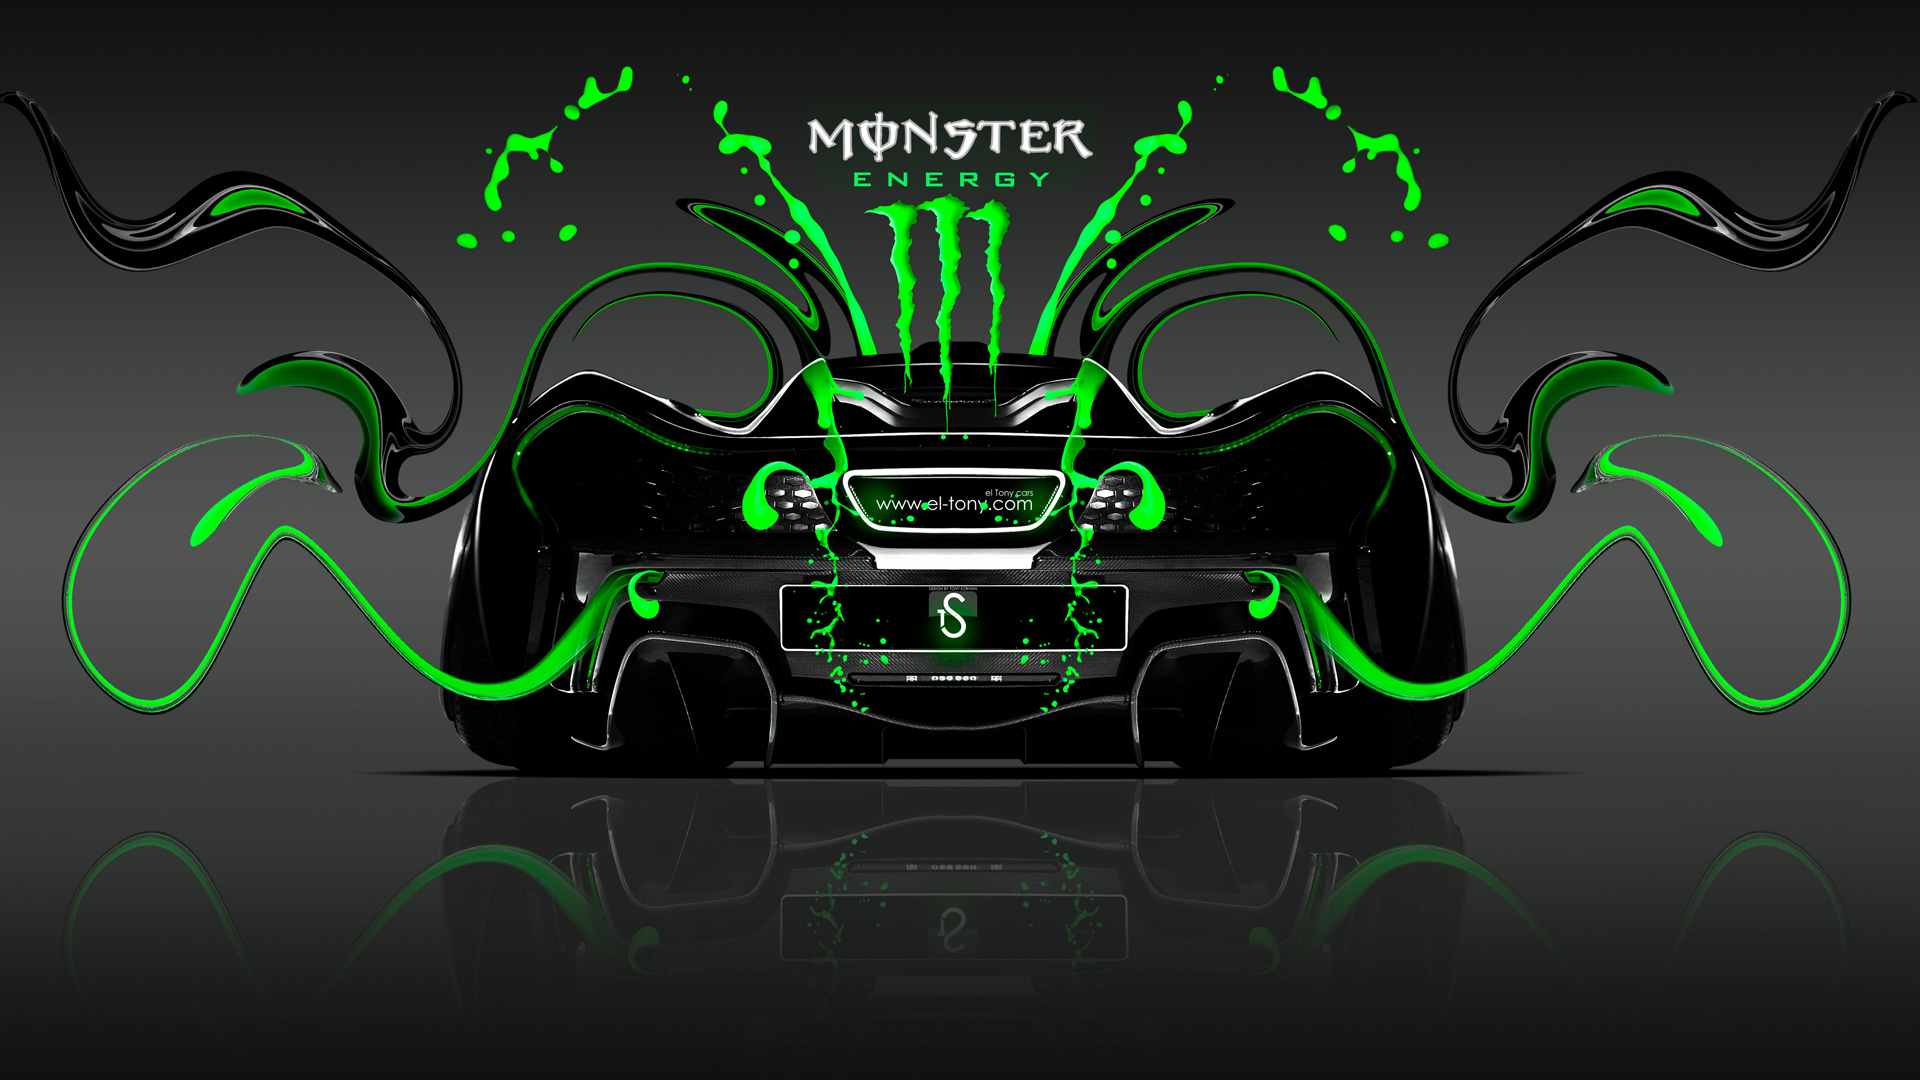 McLaren P1 Fantasy Back Plastic Fly Car 2014 · Monster Energy McLaren P1  Back Plastic Car 2014